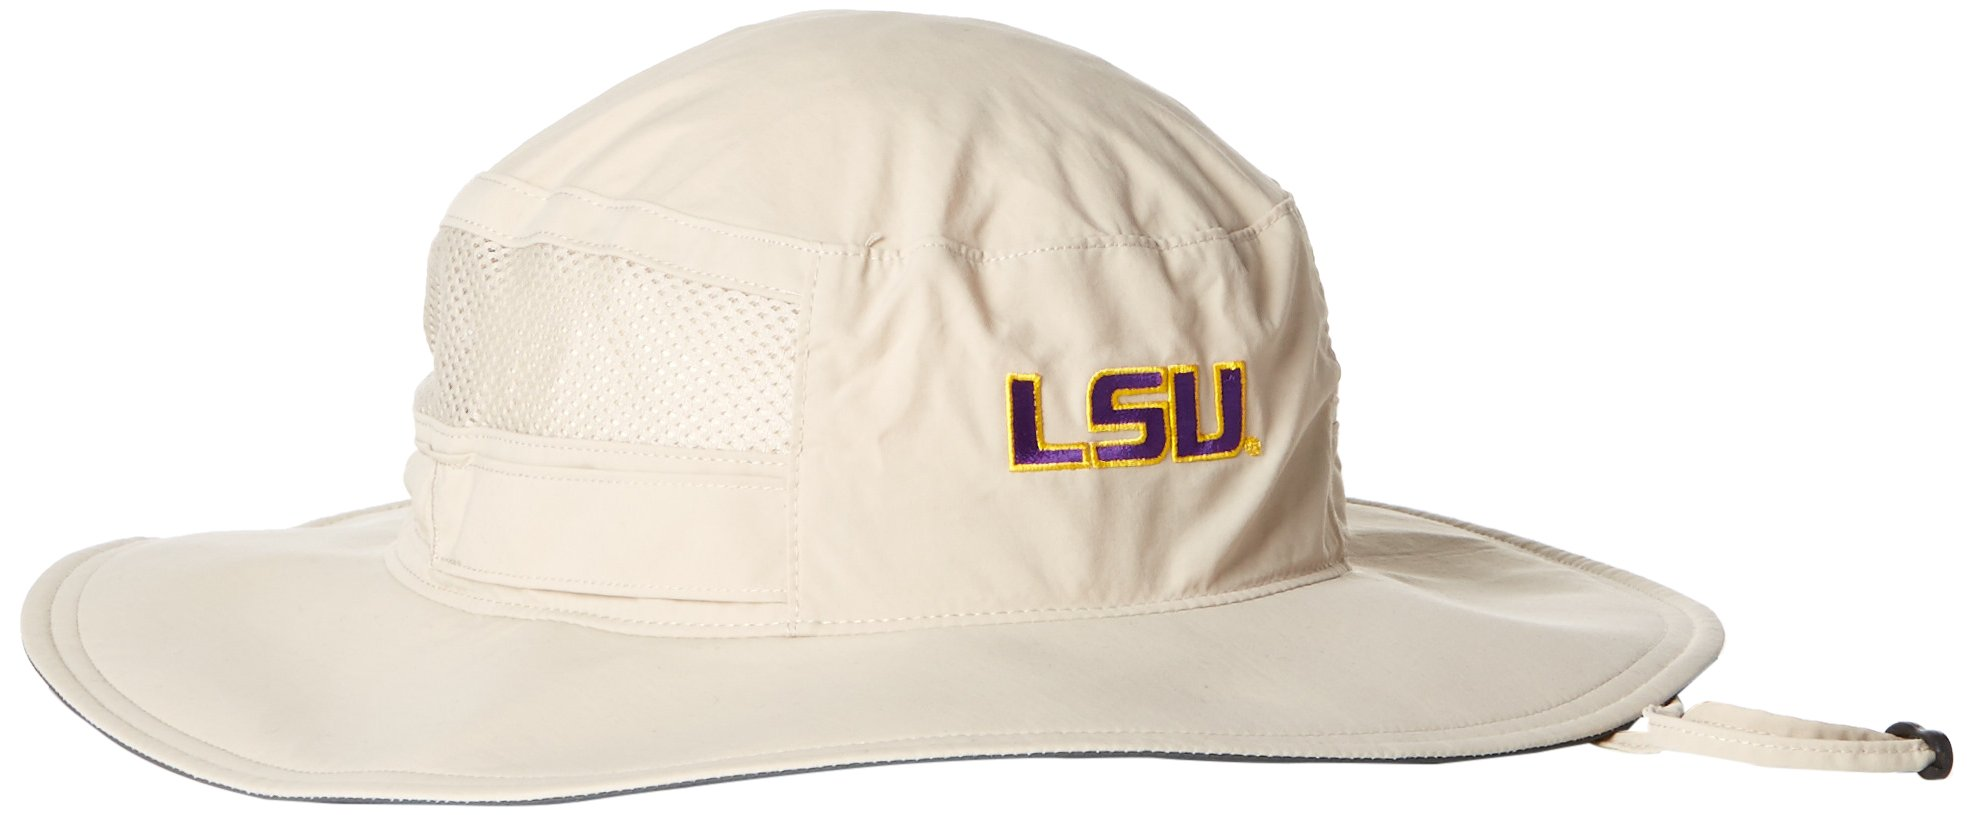 893da563165 Buy NCAA LSU Tigers Collegiate Bora Bora II Booney